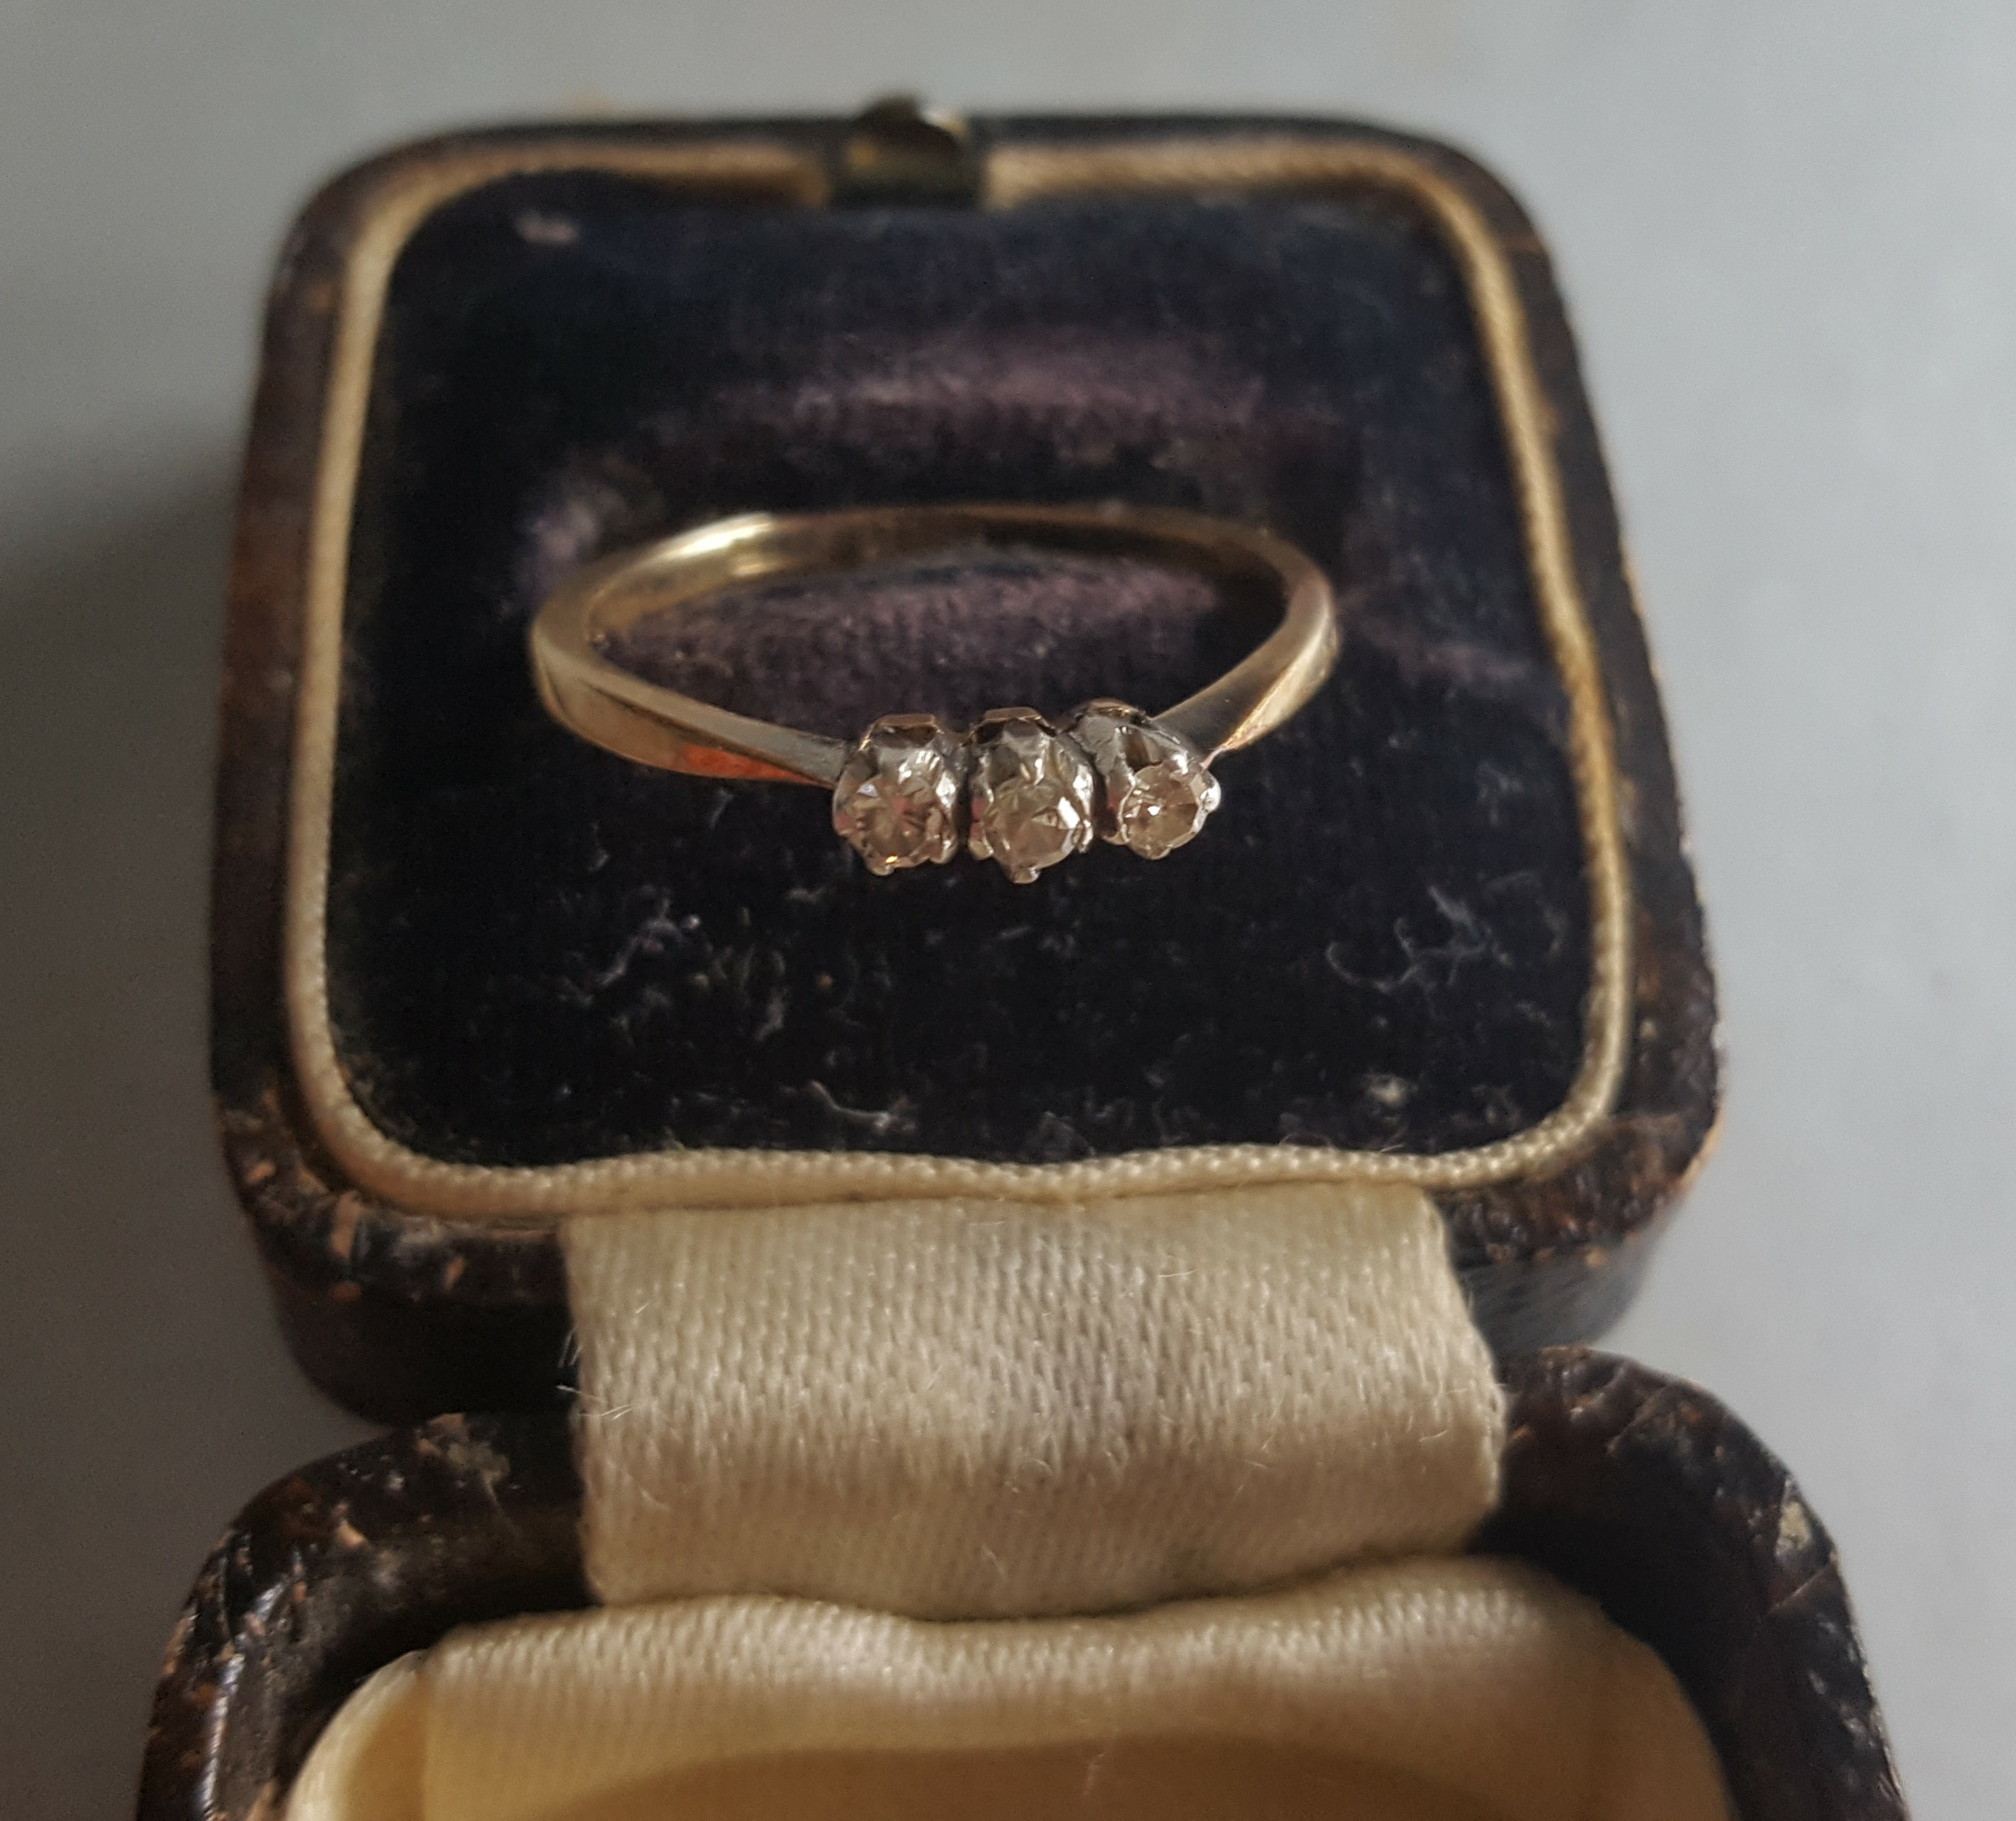 Lot 54 - Vintage 18ct Diamond Gold Ring. Three Diamonds Size 'M'